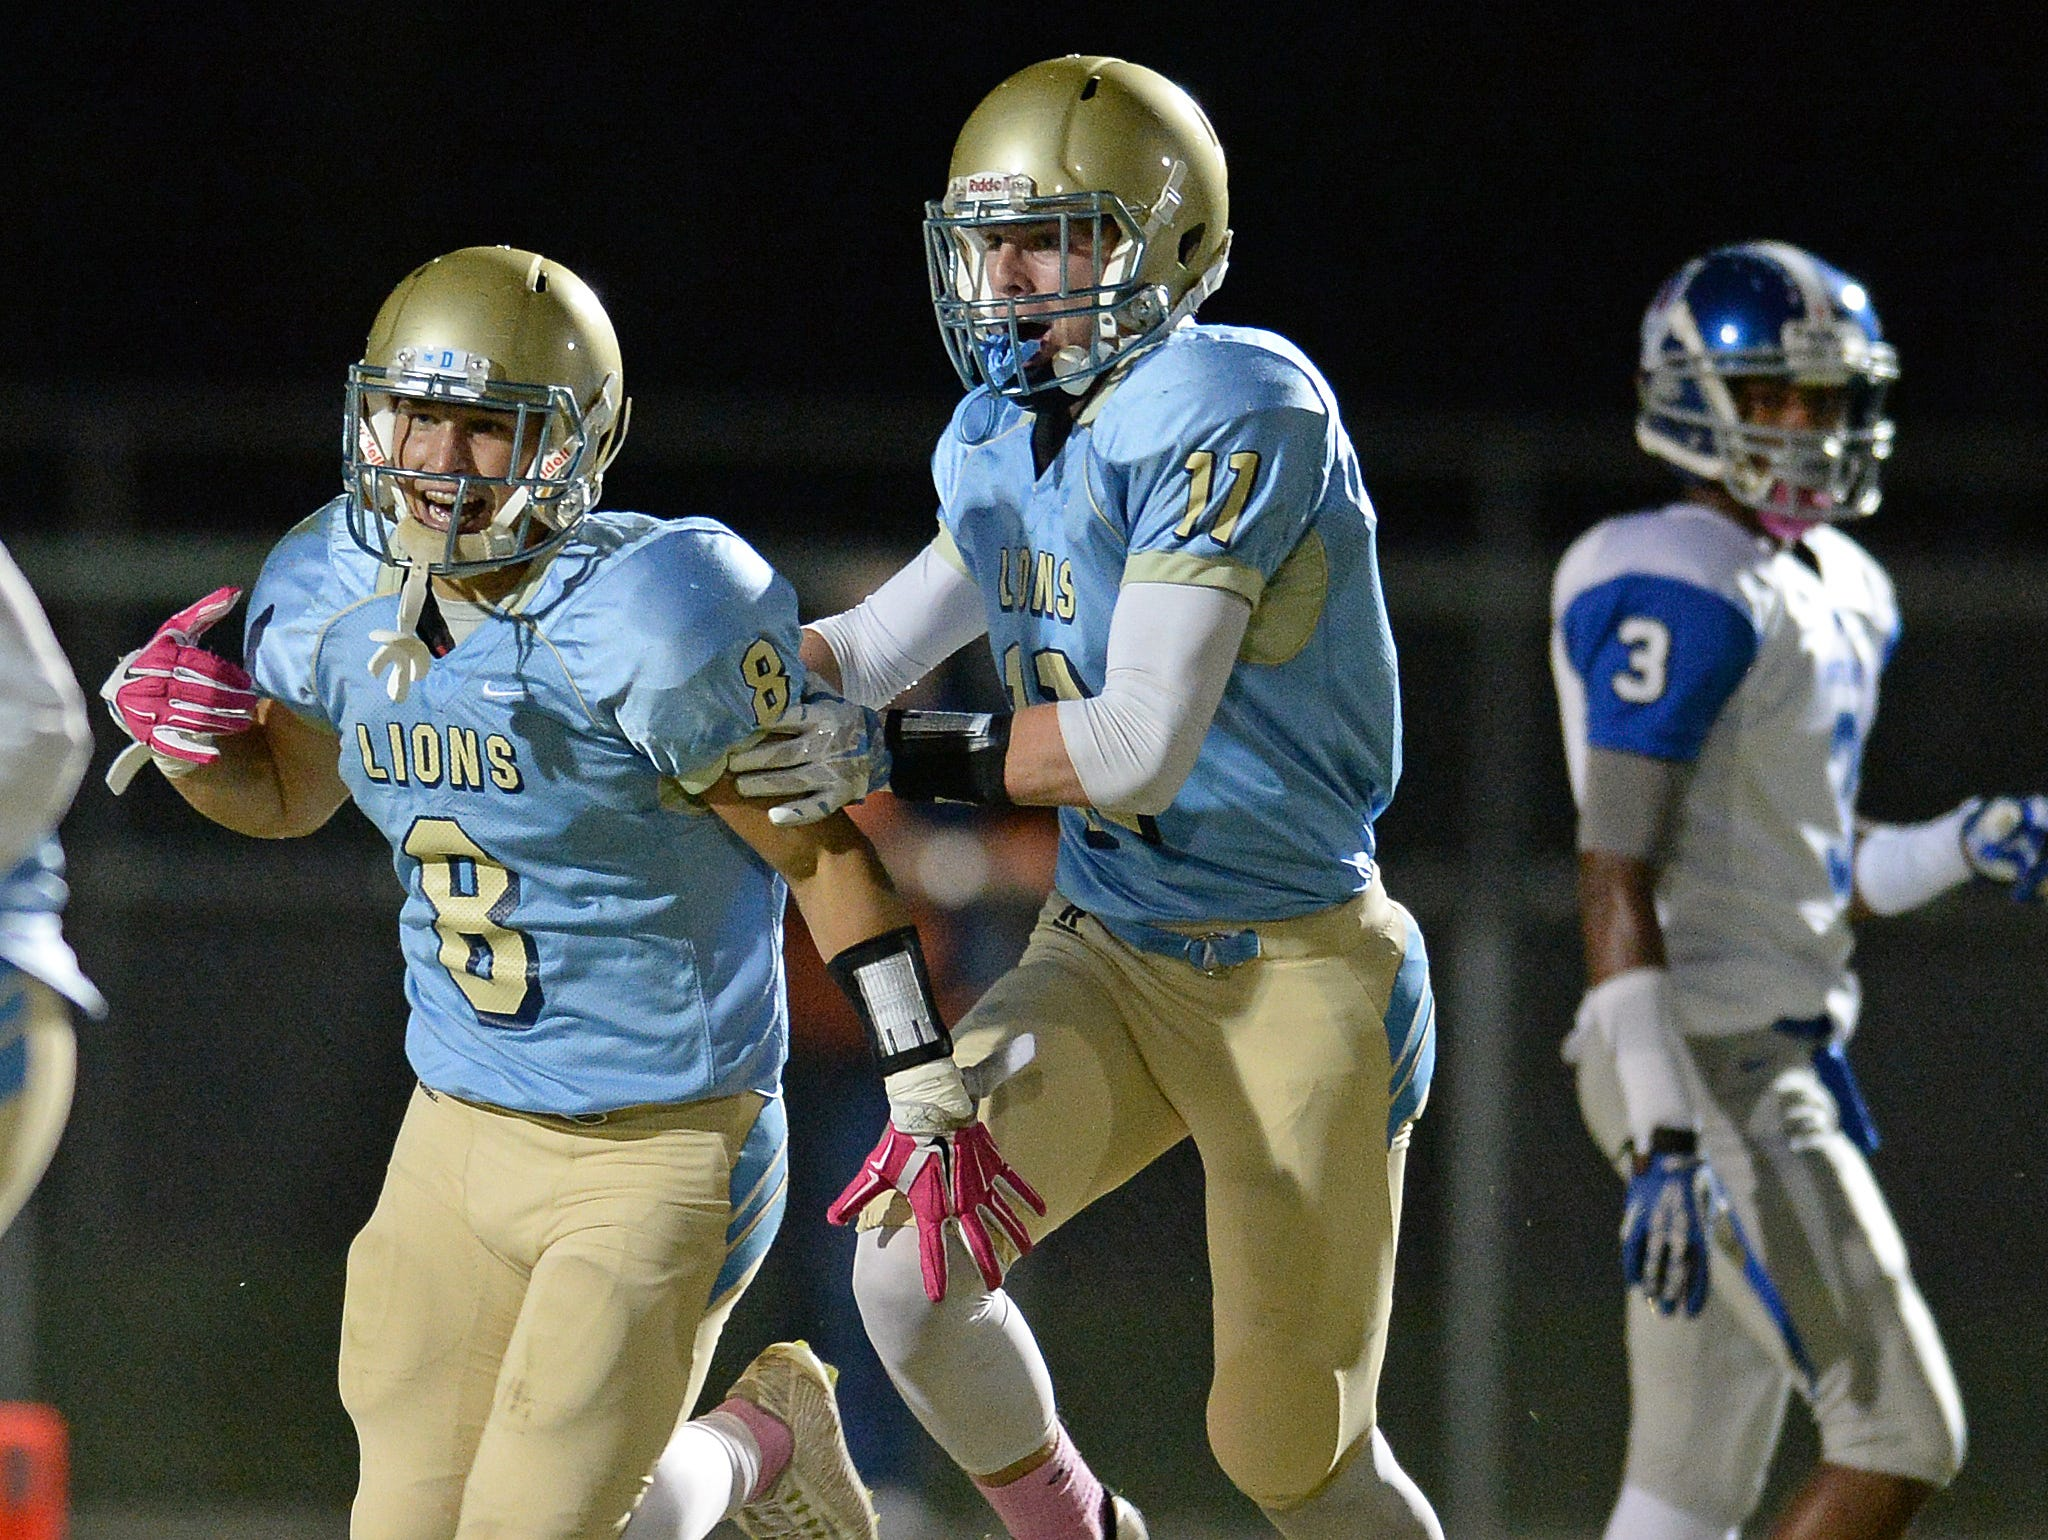 Daniel's Carter Groomes (8) celebrates with Jacob Maloney (11) after intercepting a Pickens pass Friday, October 16, 2015 at Daniel High in Central.